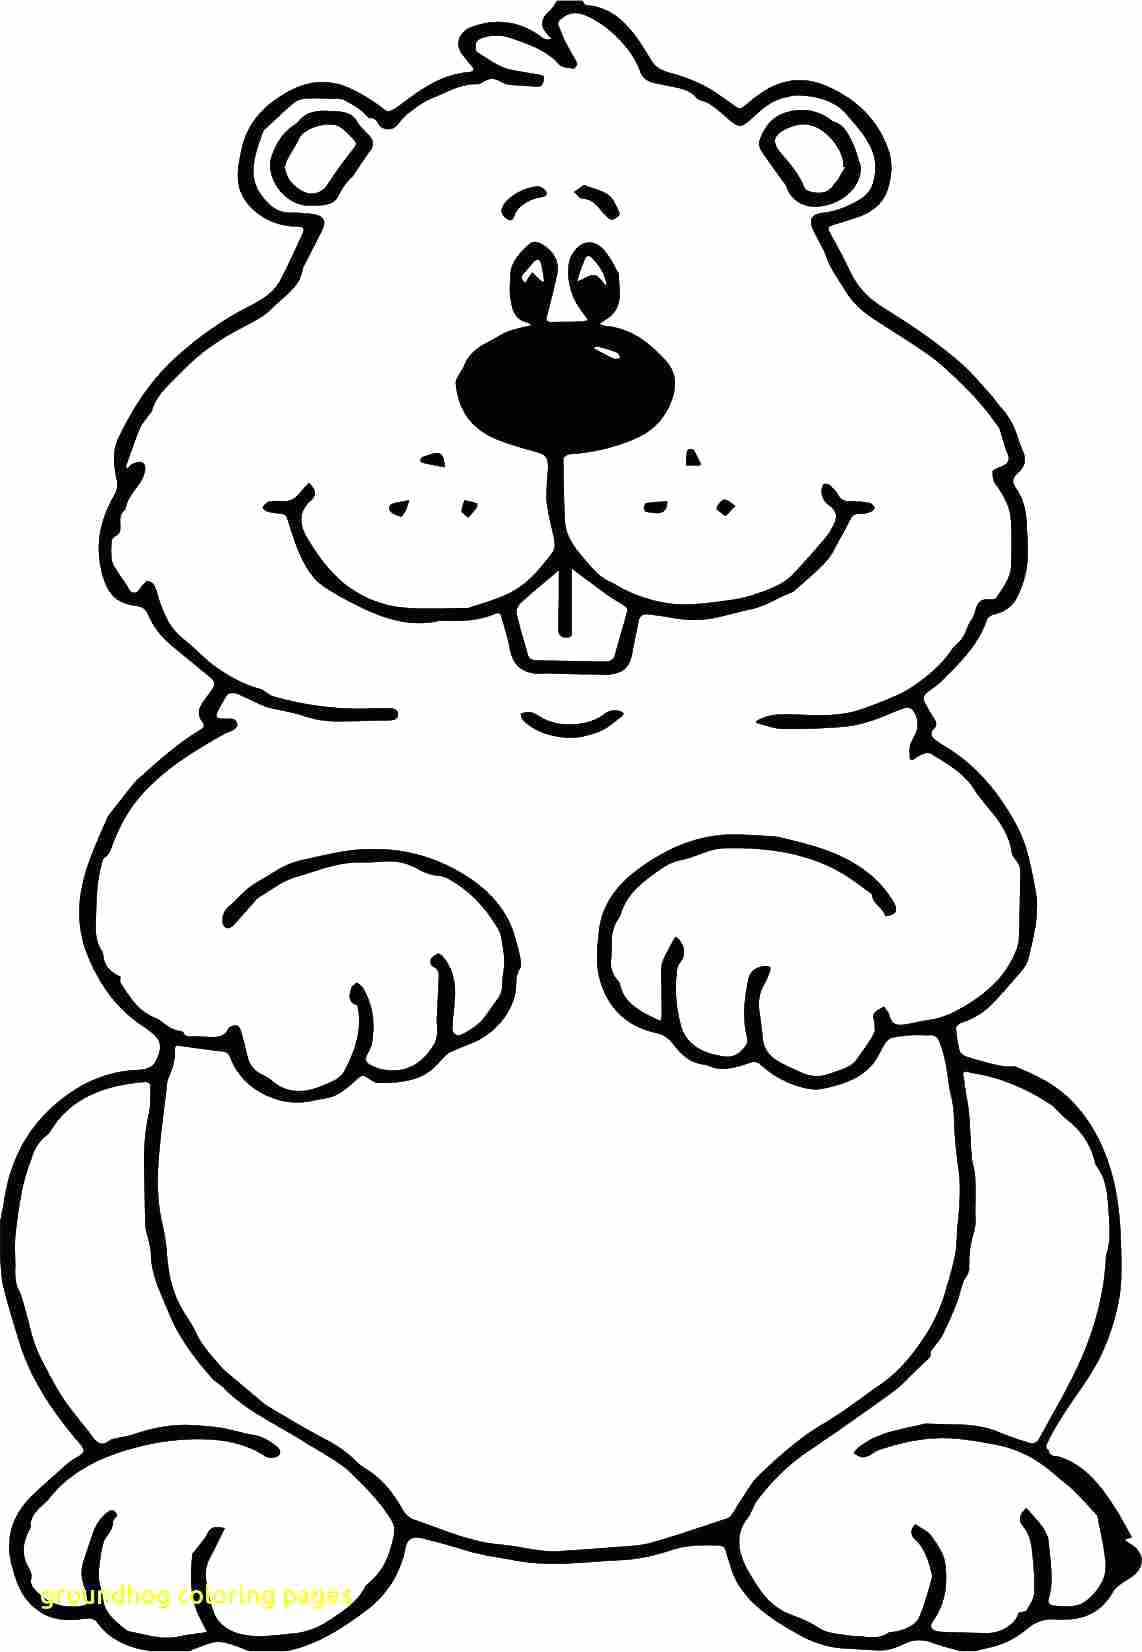 Groundhog clipart outline. Black and white in